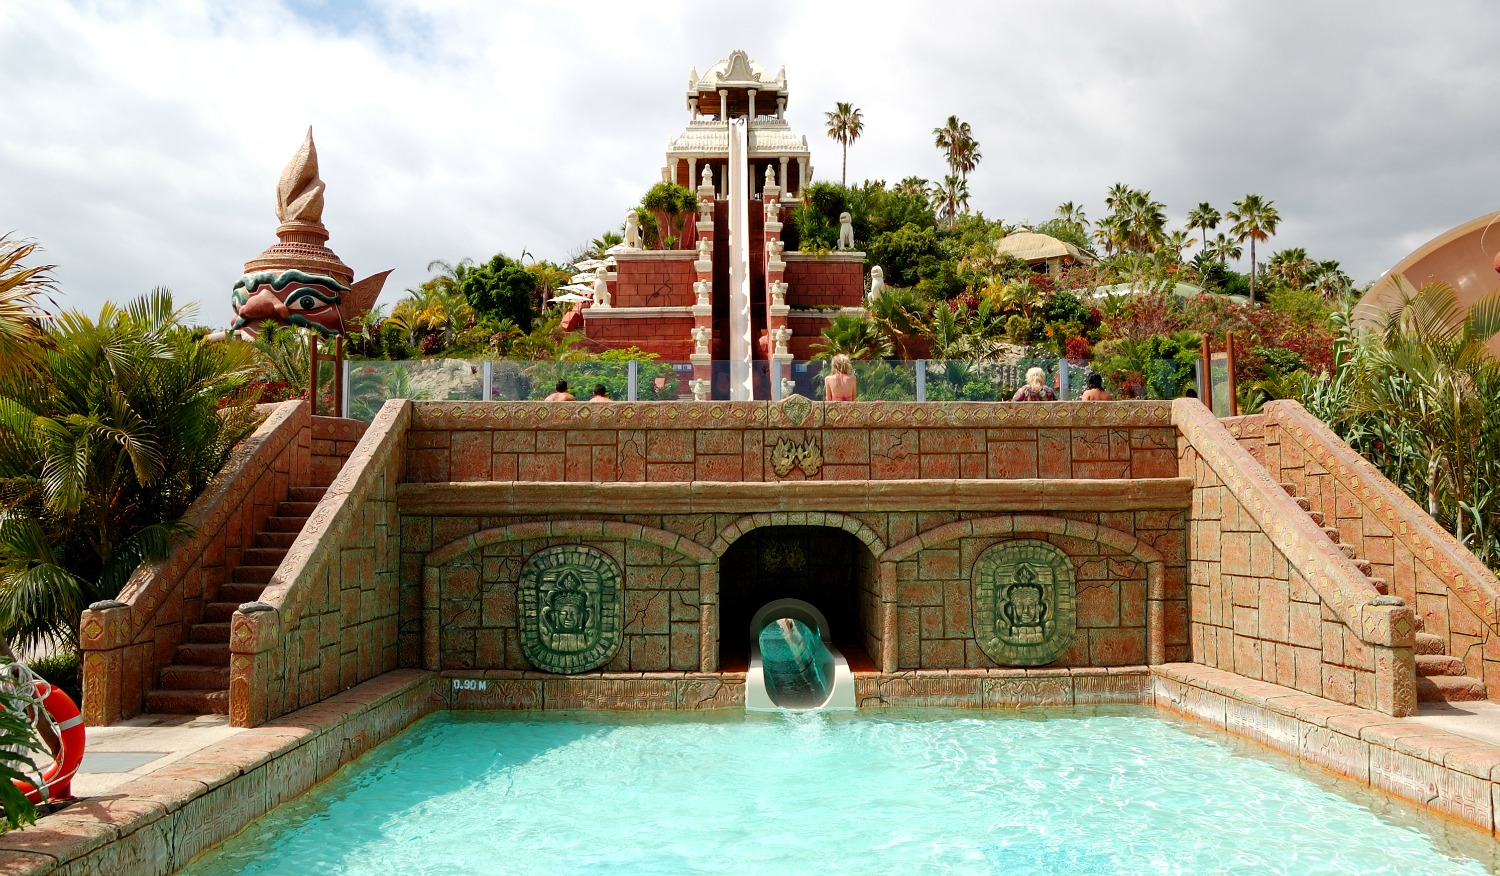 The Tower of Power water slide